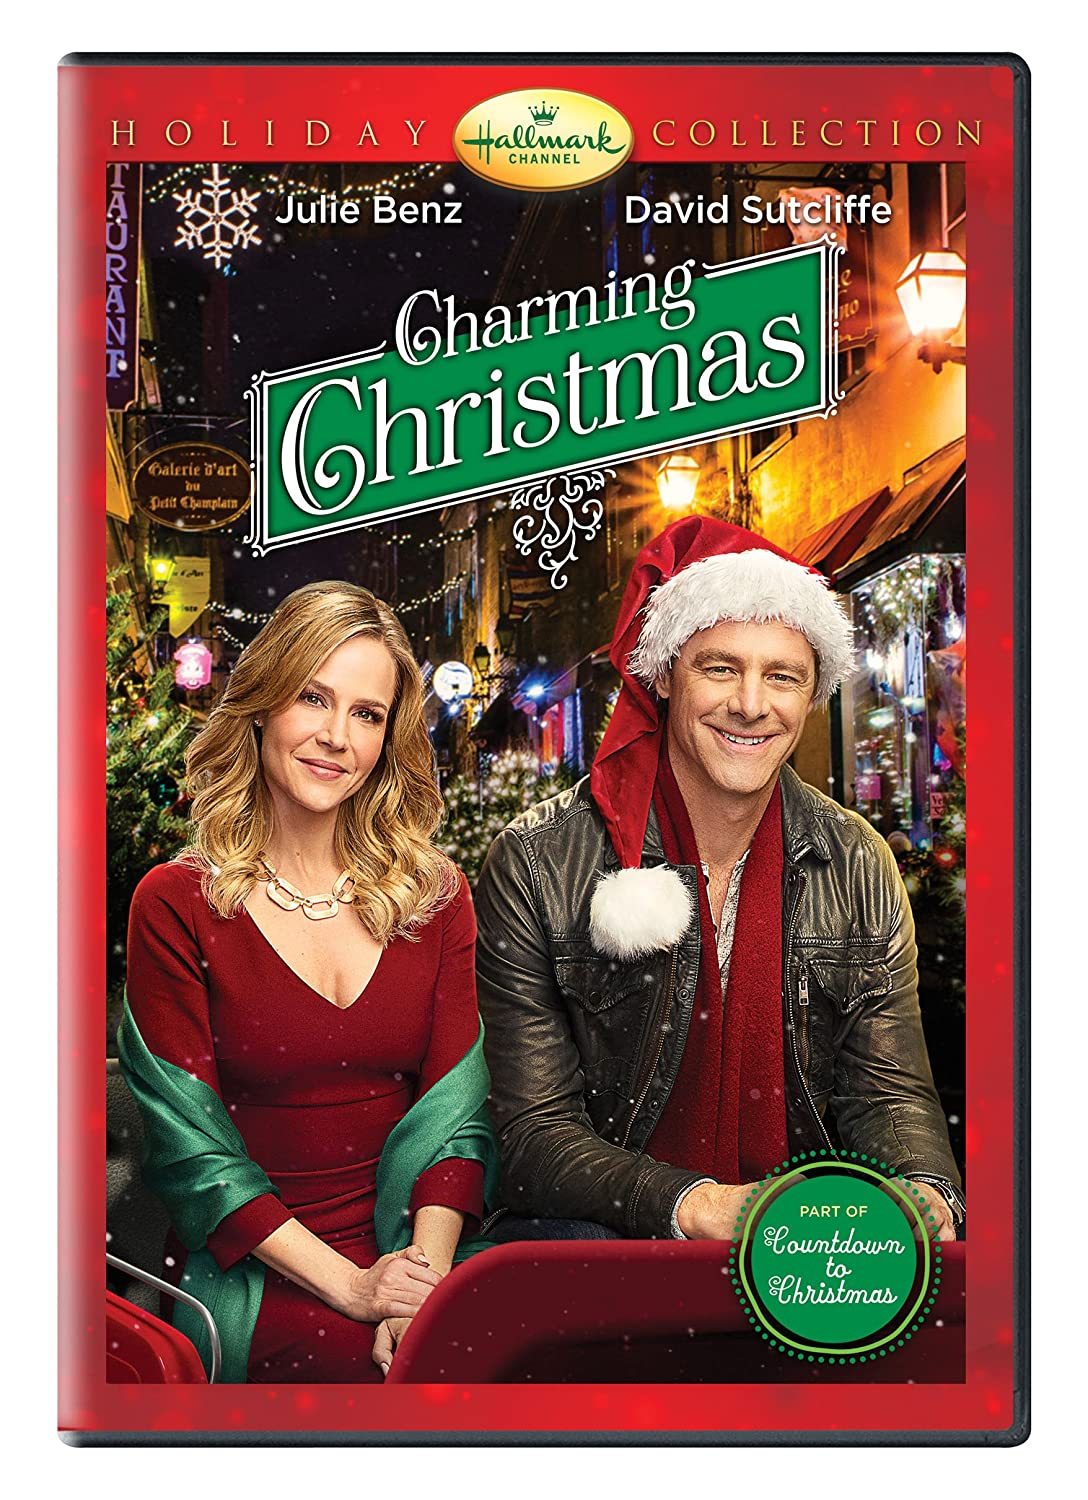 Amazon.com: Charming Christmas: Julie Benz, David Sutcliffe, Bruce ...